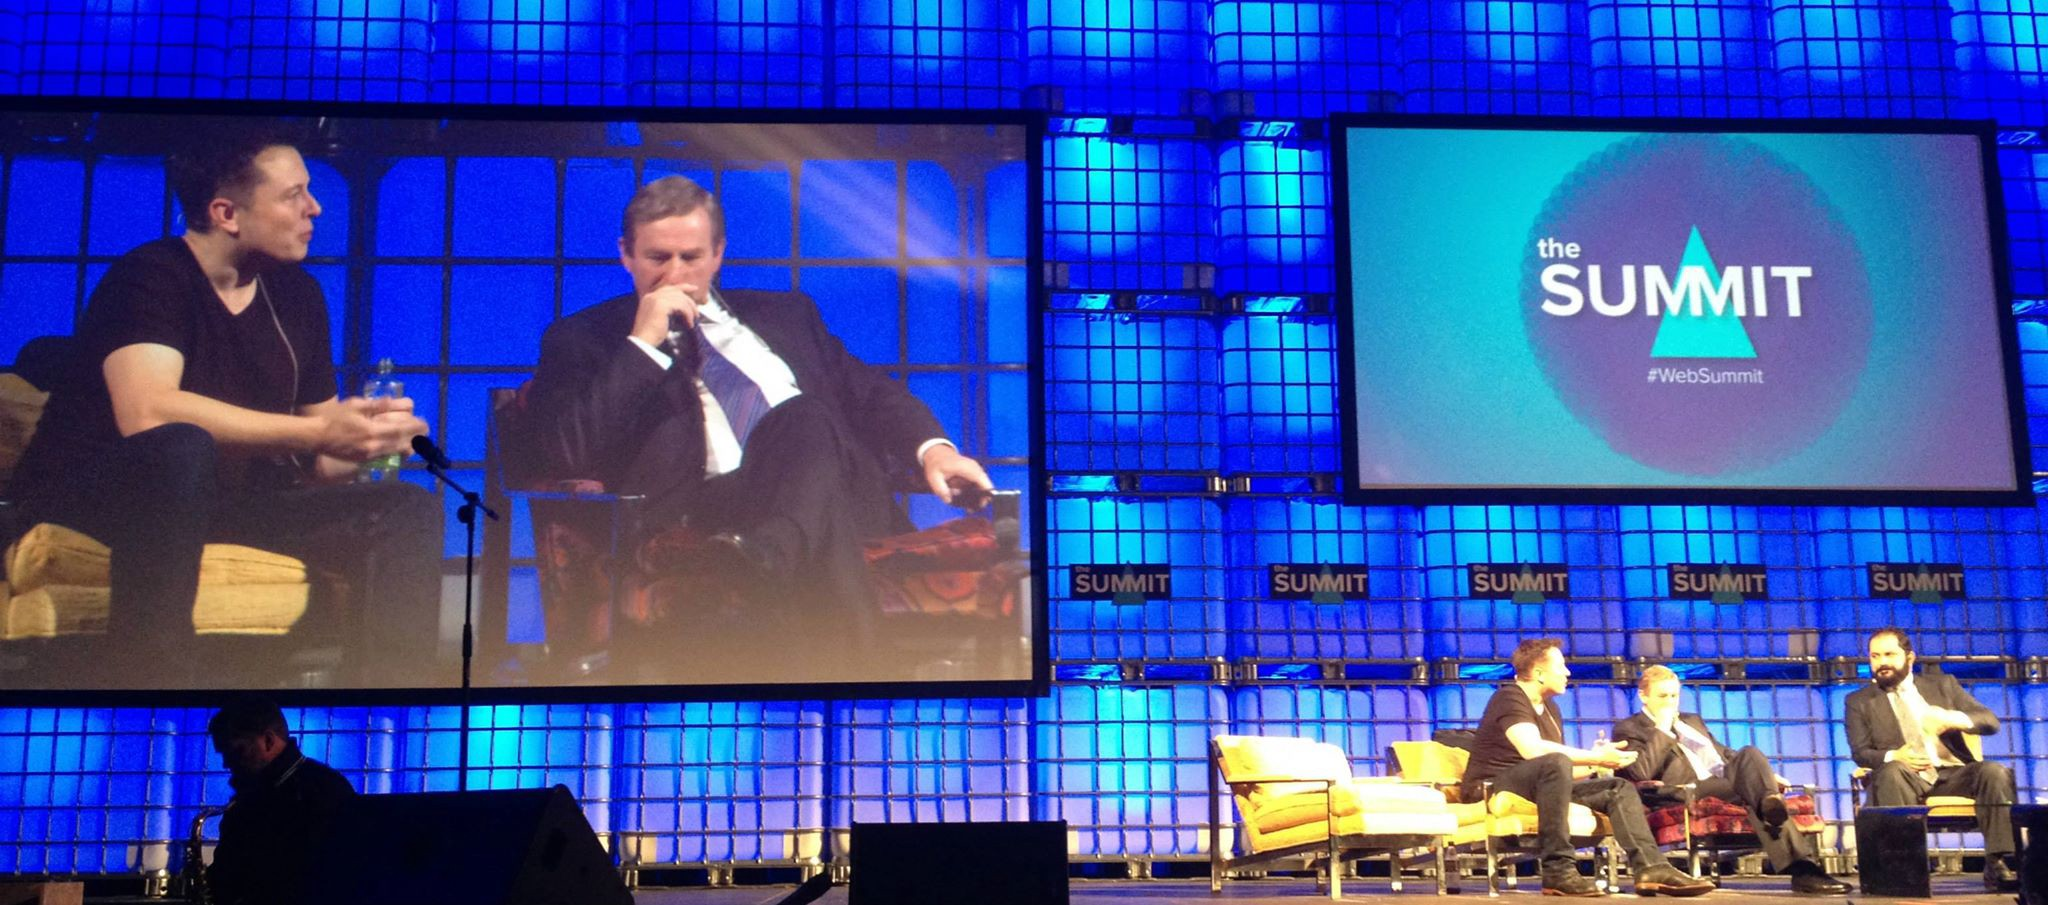 Elon Musk and Enda Kenny at WEB SUMMIT 2013